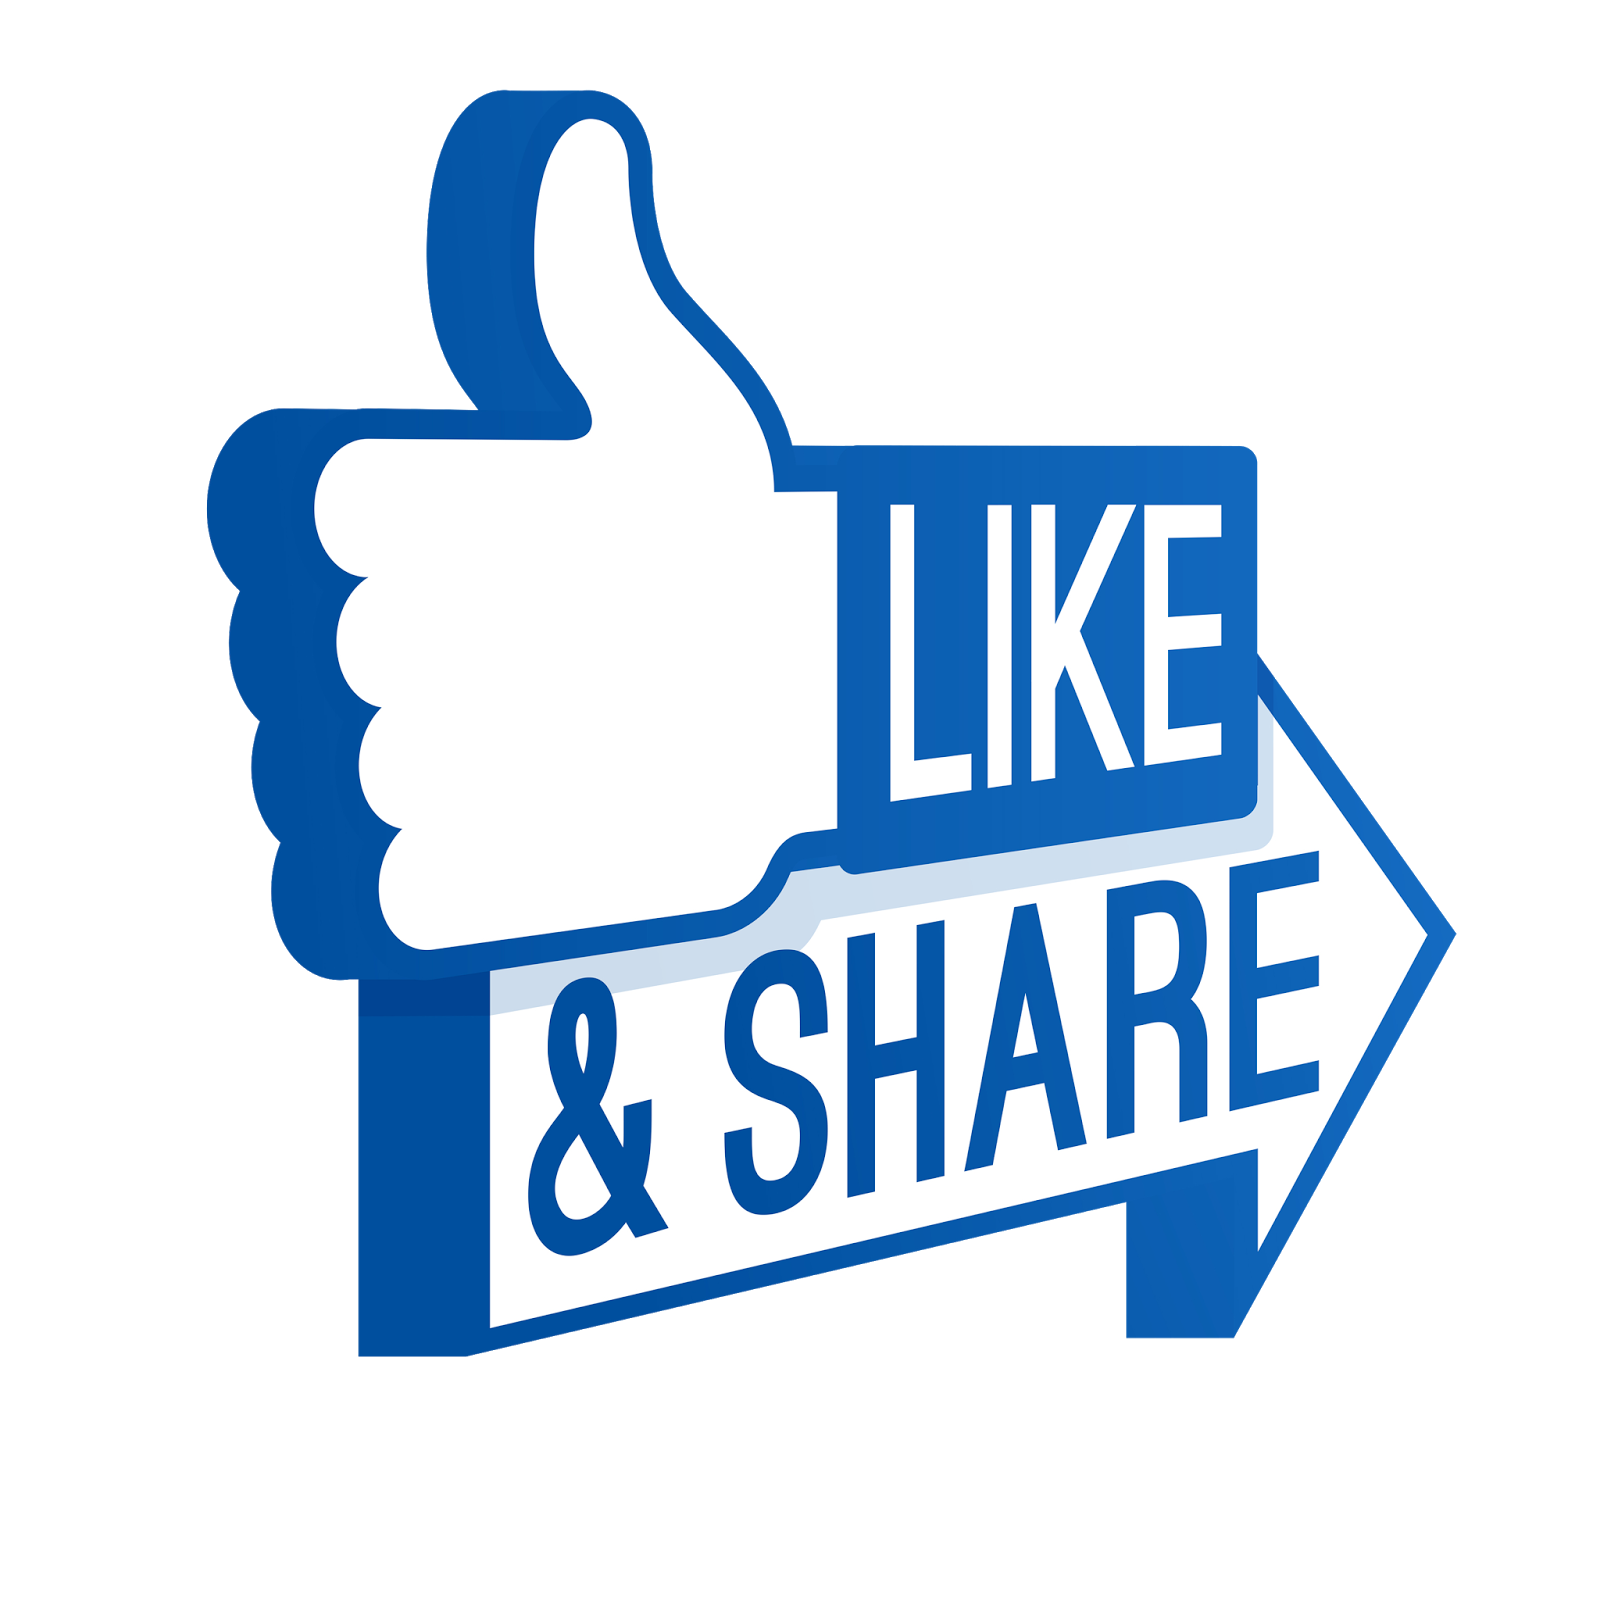 Like Icons Media Button Share Computer Facebook PNG Image